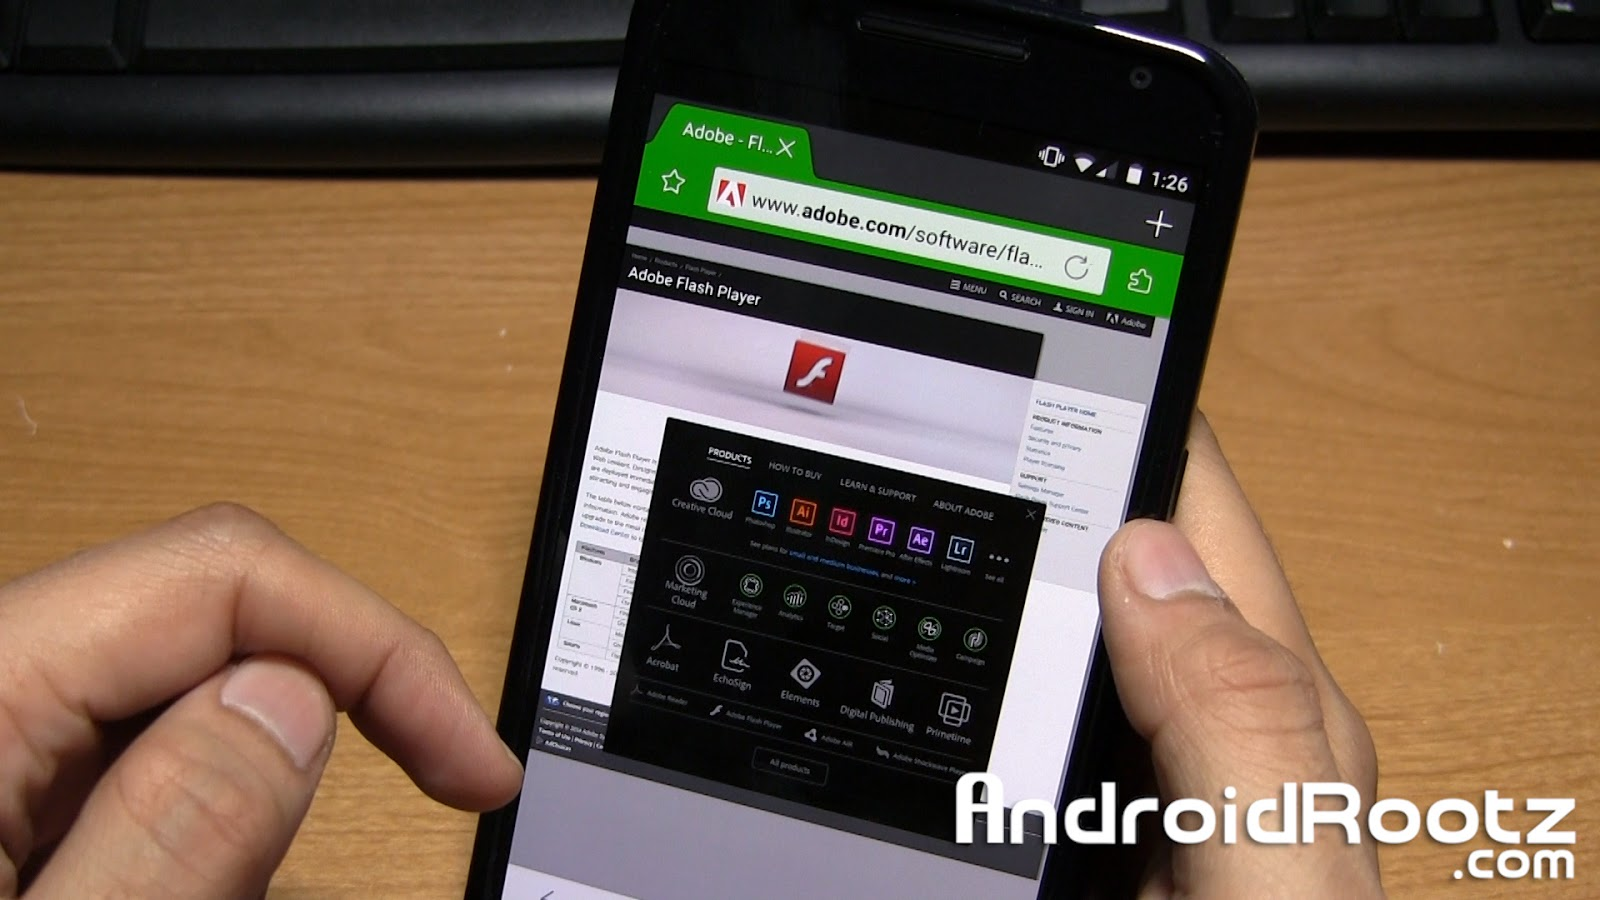 adobe flash player android 7.0